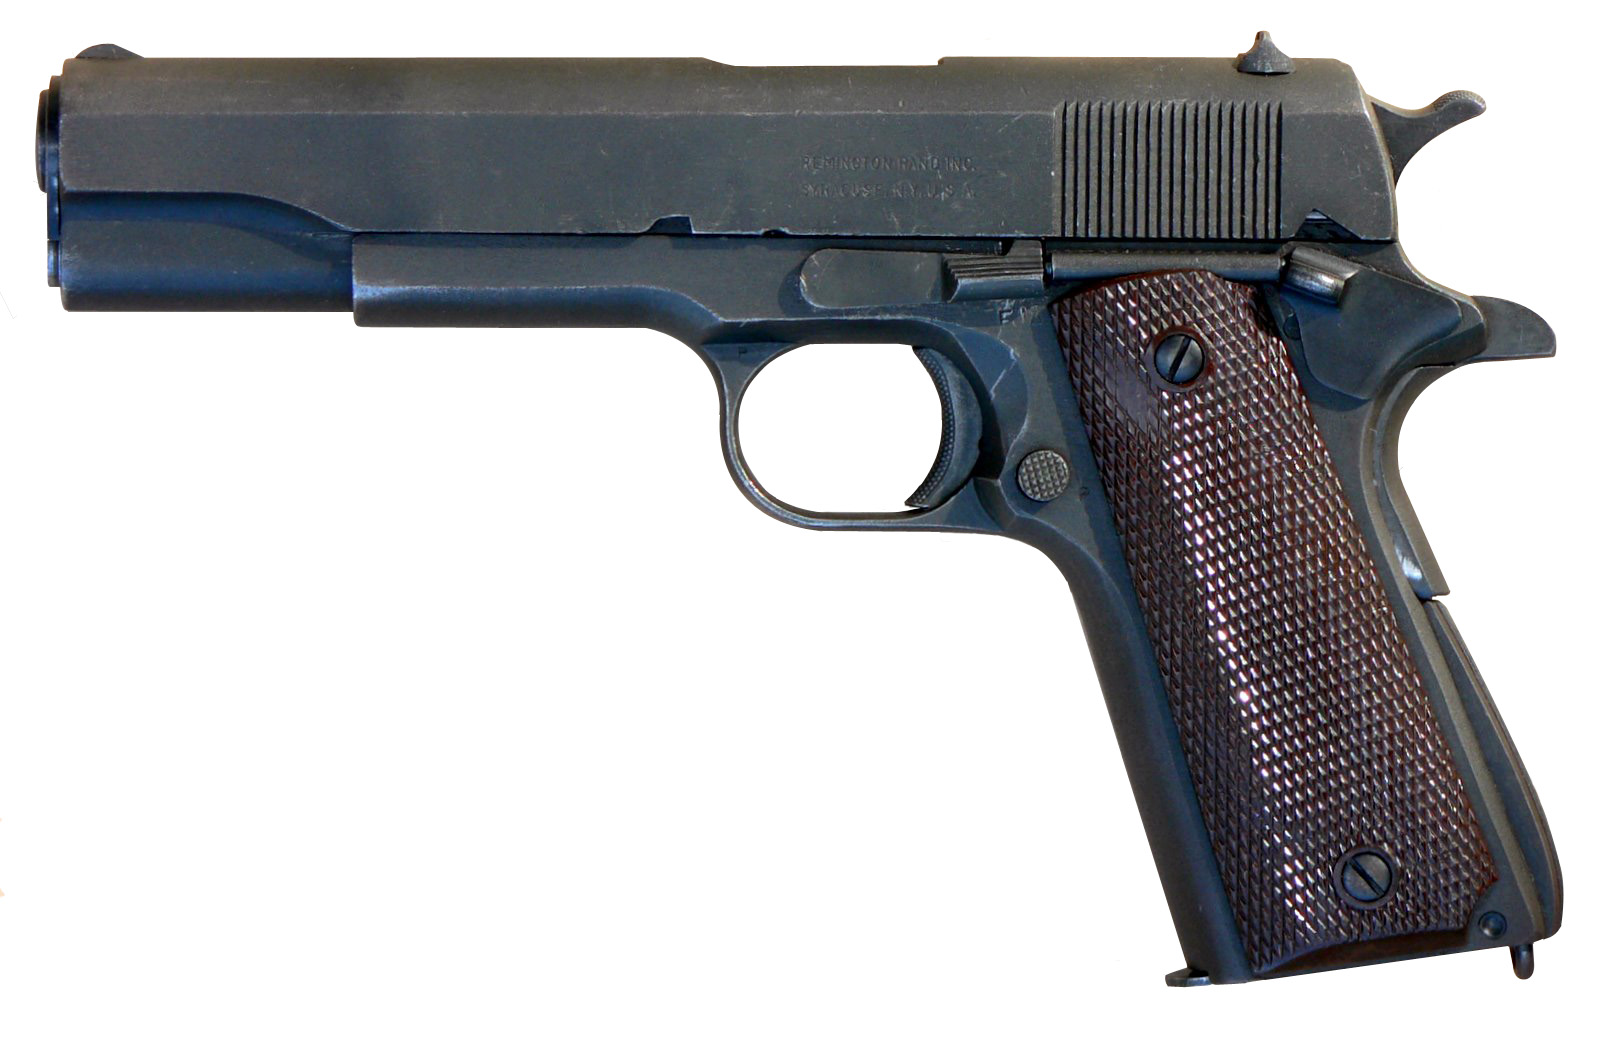 File:M1911 A1 pistol.jpg - Wikipedia, the free encyclopedia